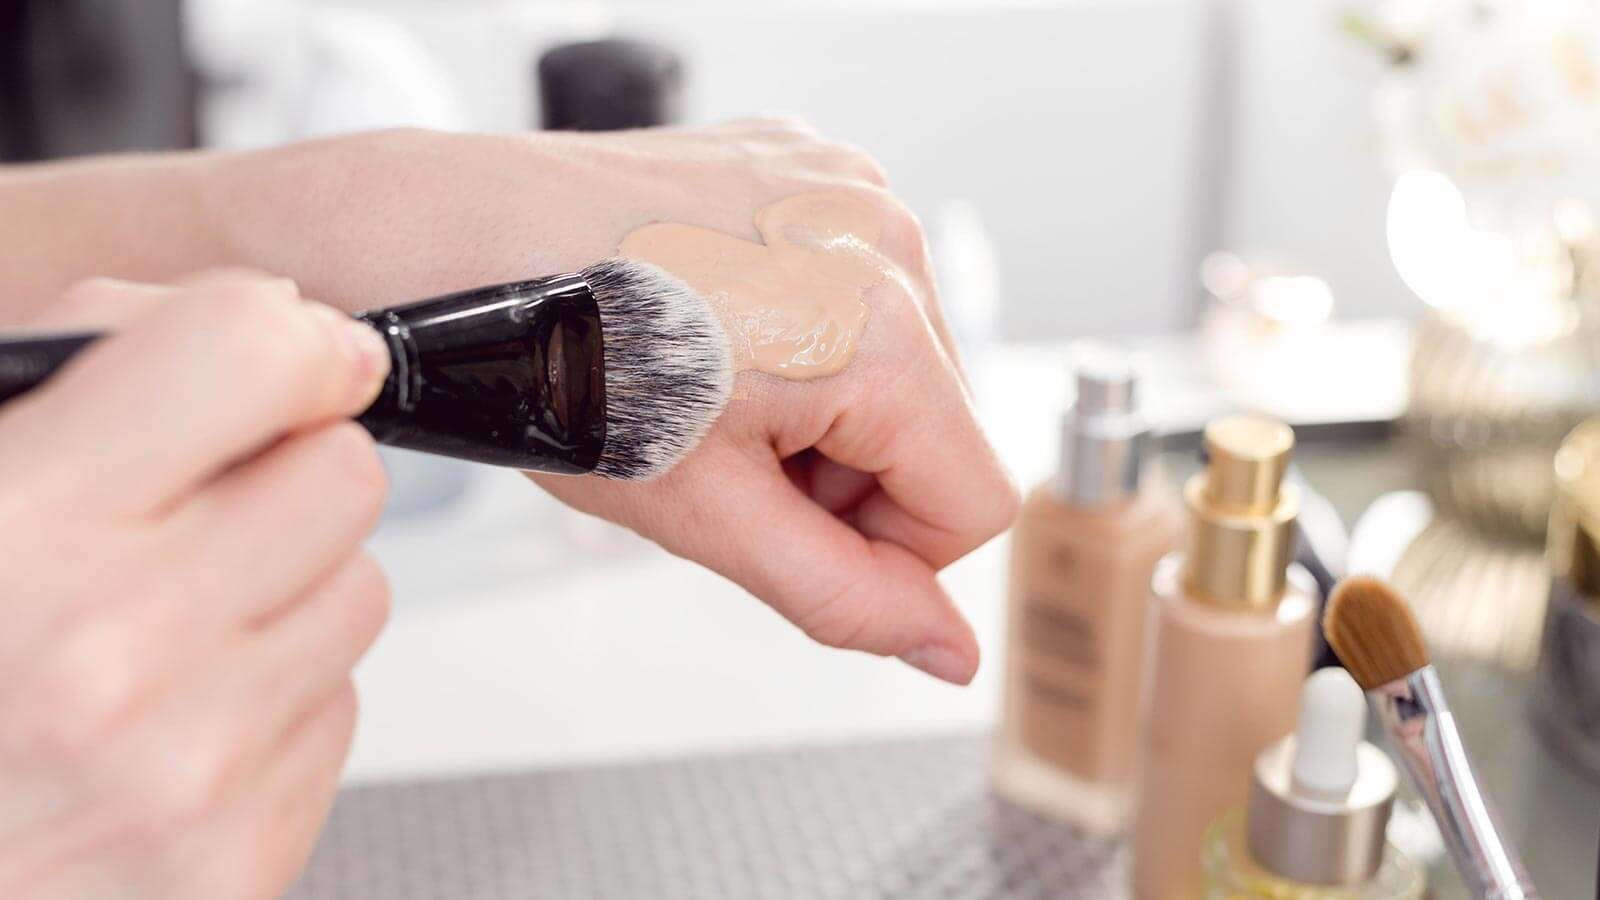 How to Get Rid of Raccoon Eyes After Tanning